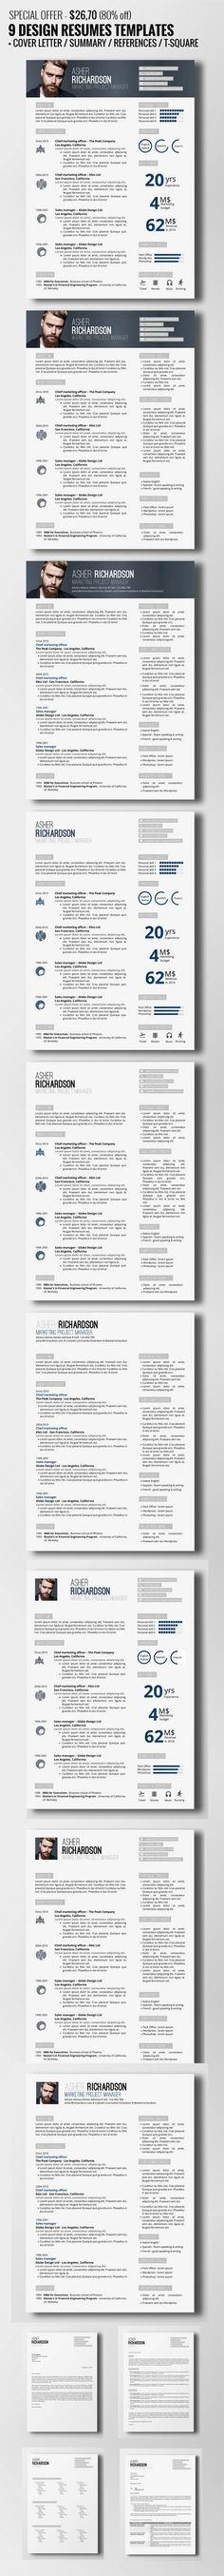 435 best Resume images on Pinterest Resume design, Design resume - interesting resume templates